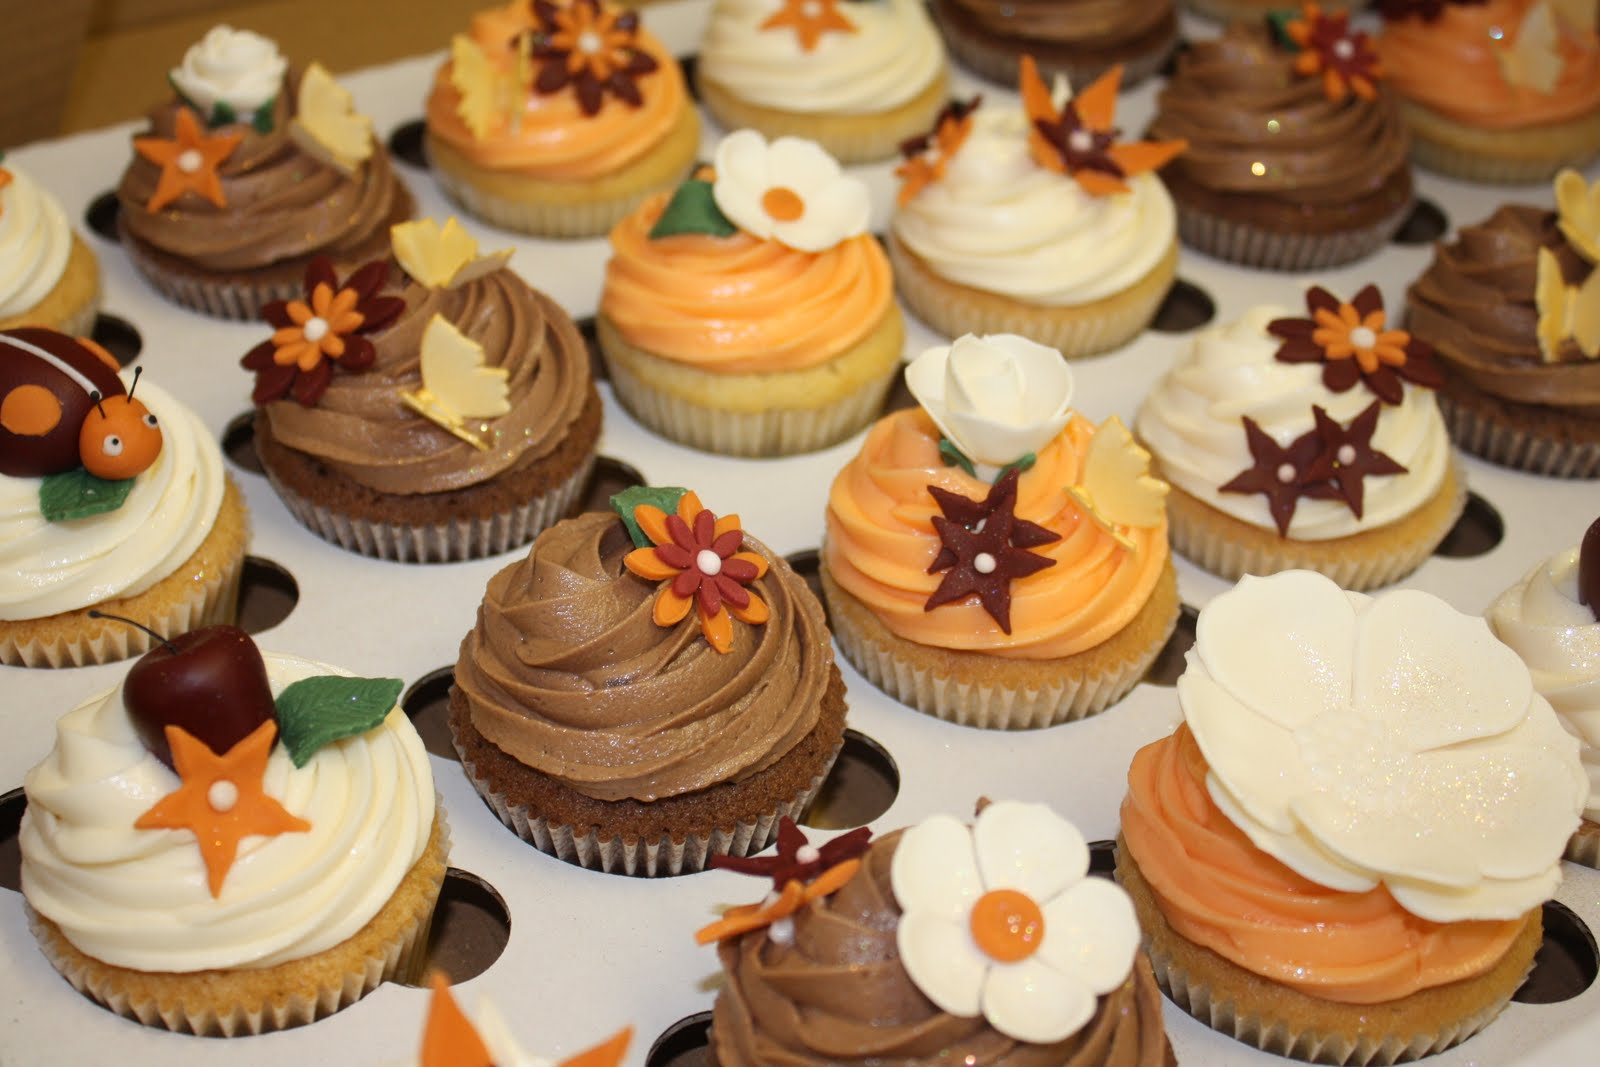 The Little House of Cupcakes Autumn wedding at Singleton